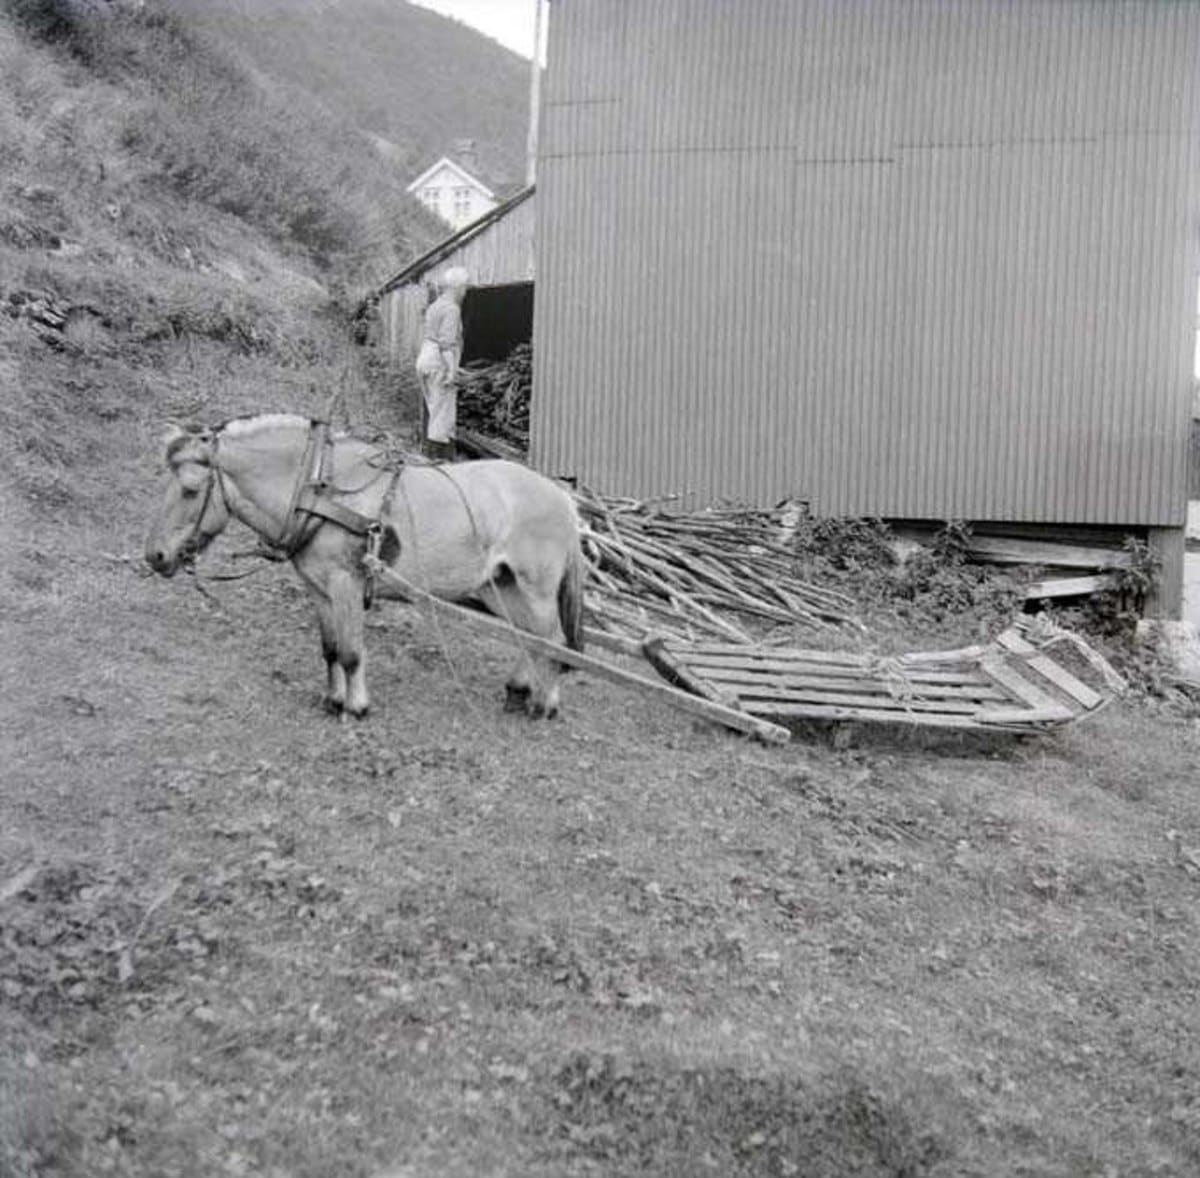 Amandus Ellingsen and his Norwegian Fjord horse with simple wooden sledge. The location is Kvantoland, Sørfold, Nordland in 1968. | Photo by Lyder Kvantoland - digitaltmuseum.no SLH.F.000001-06232 - CC BY-SA.